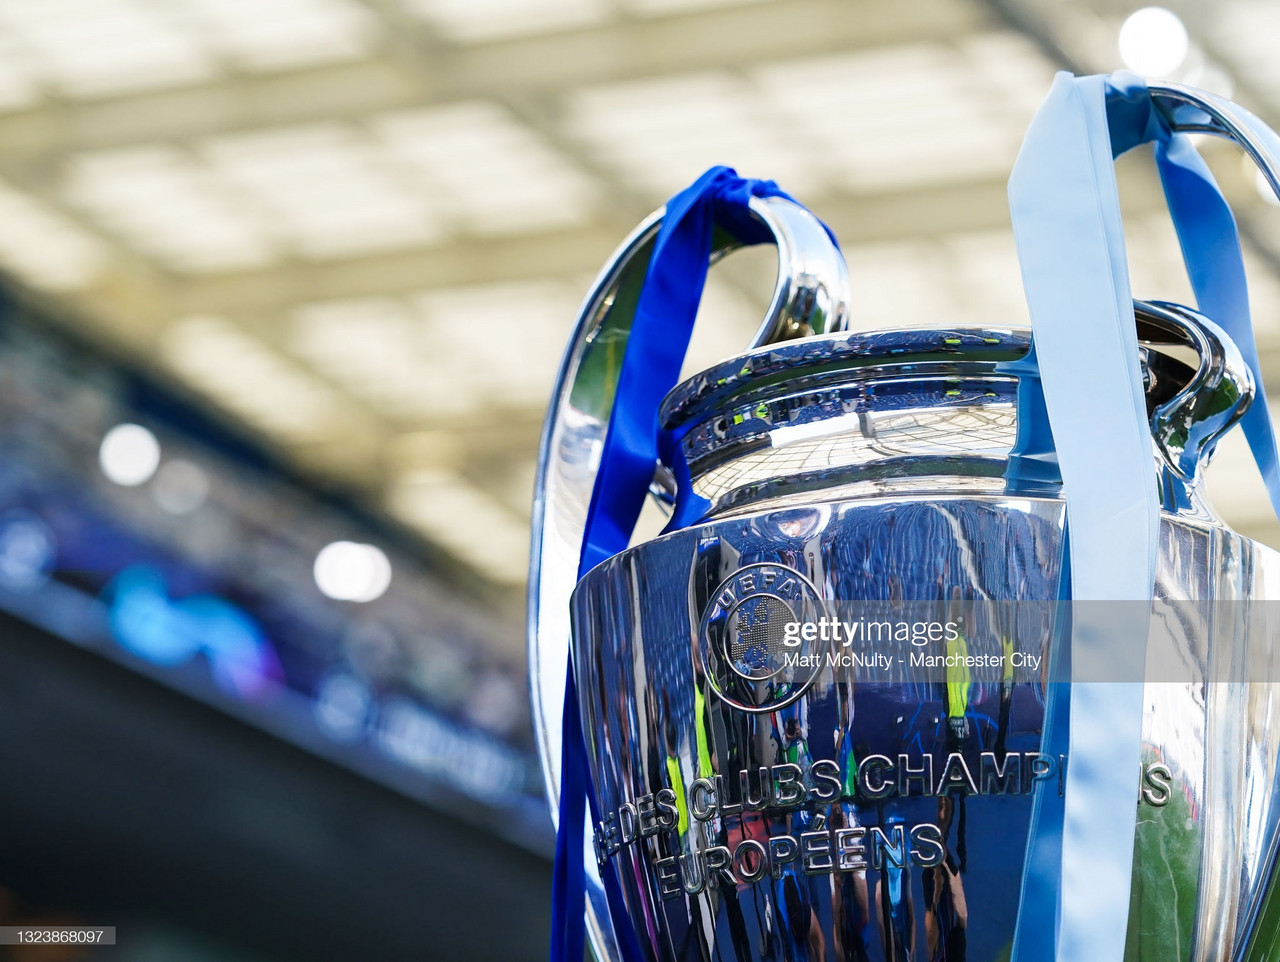 Manchester City's UEFA Champions League Group Revealed